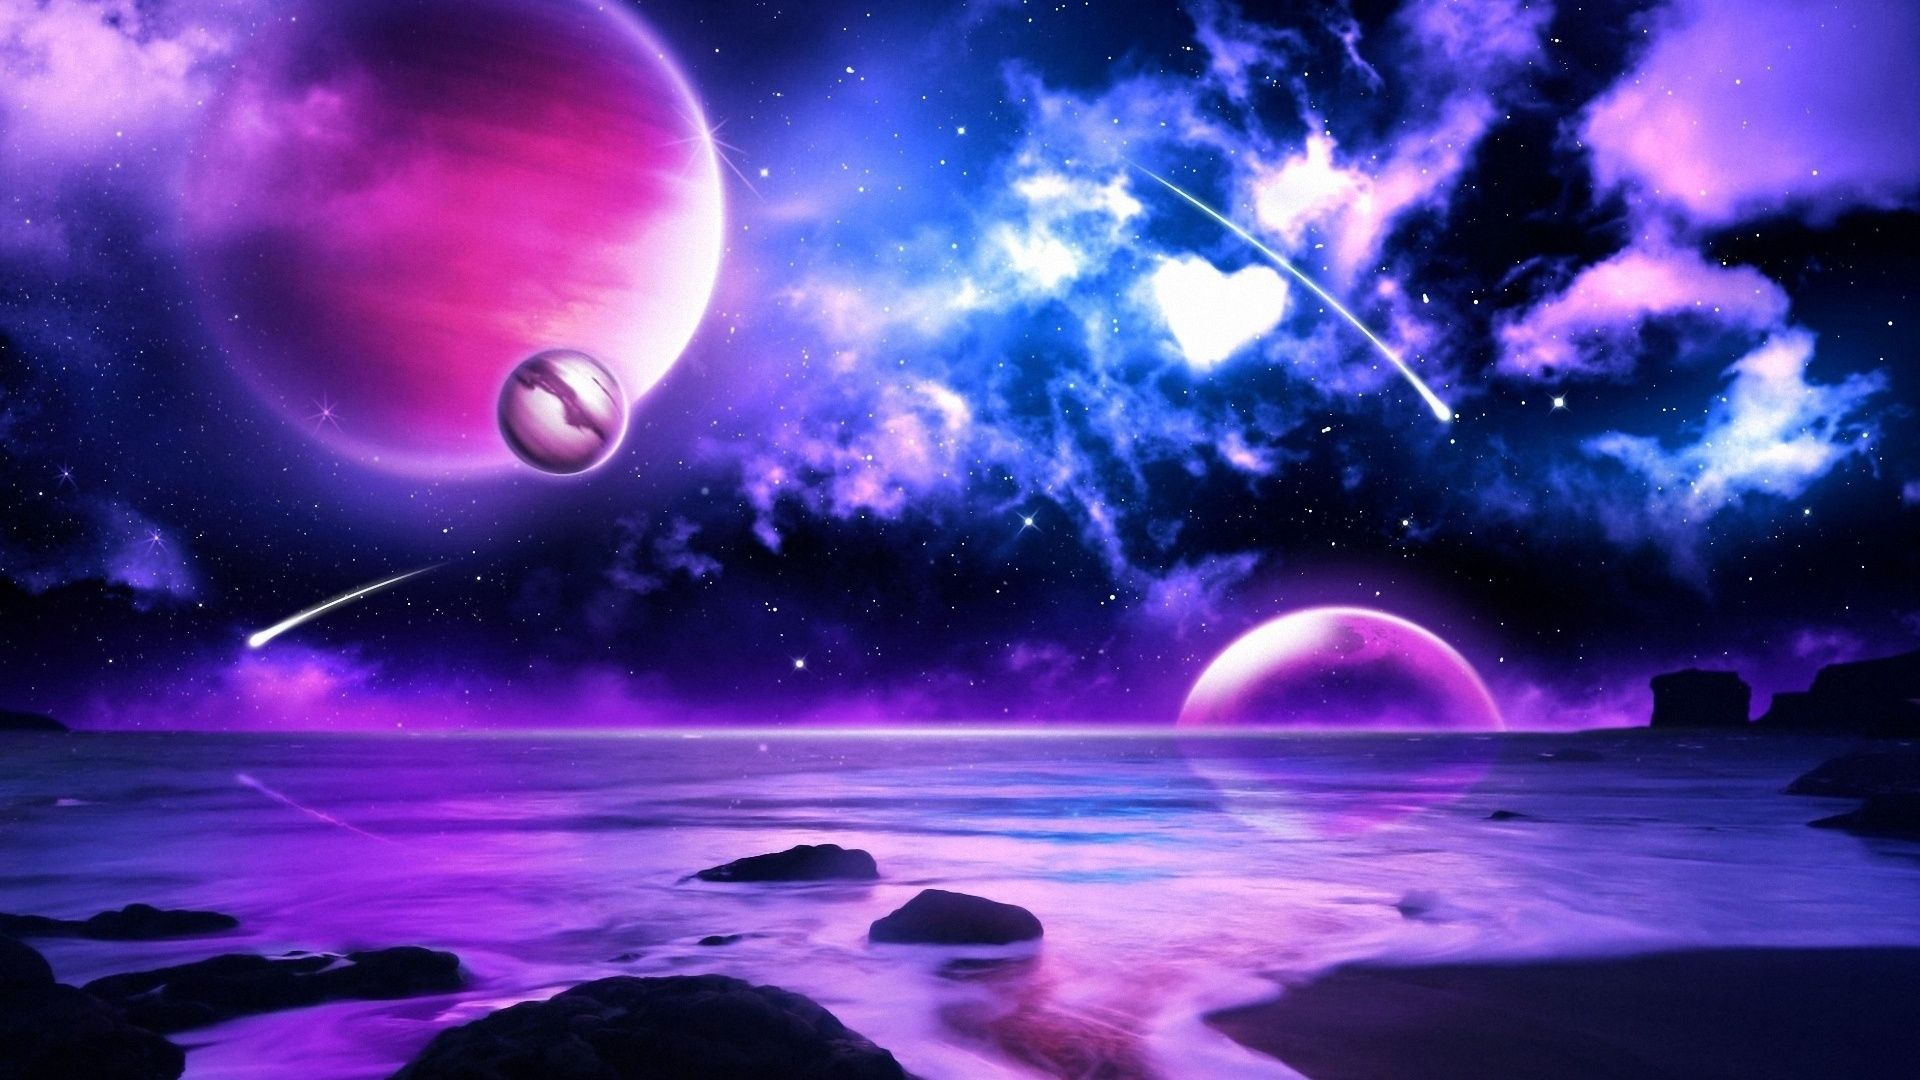 Purple Space Wallpaper wallpaper